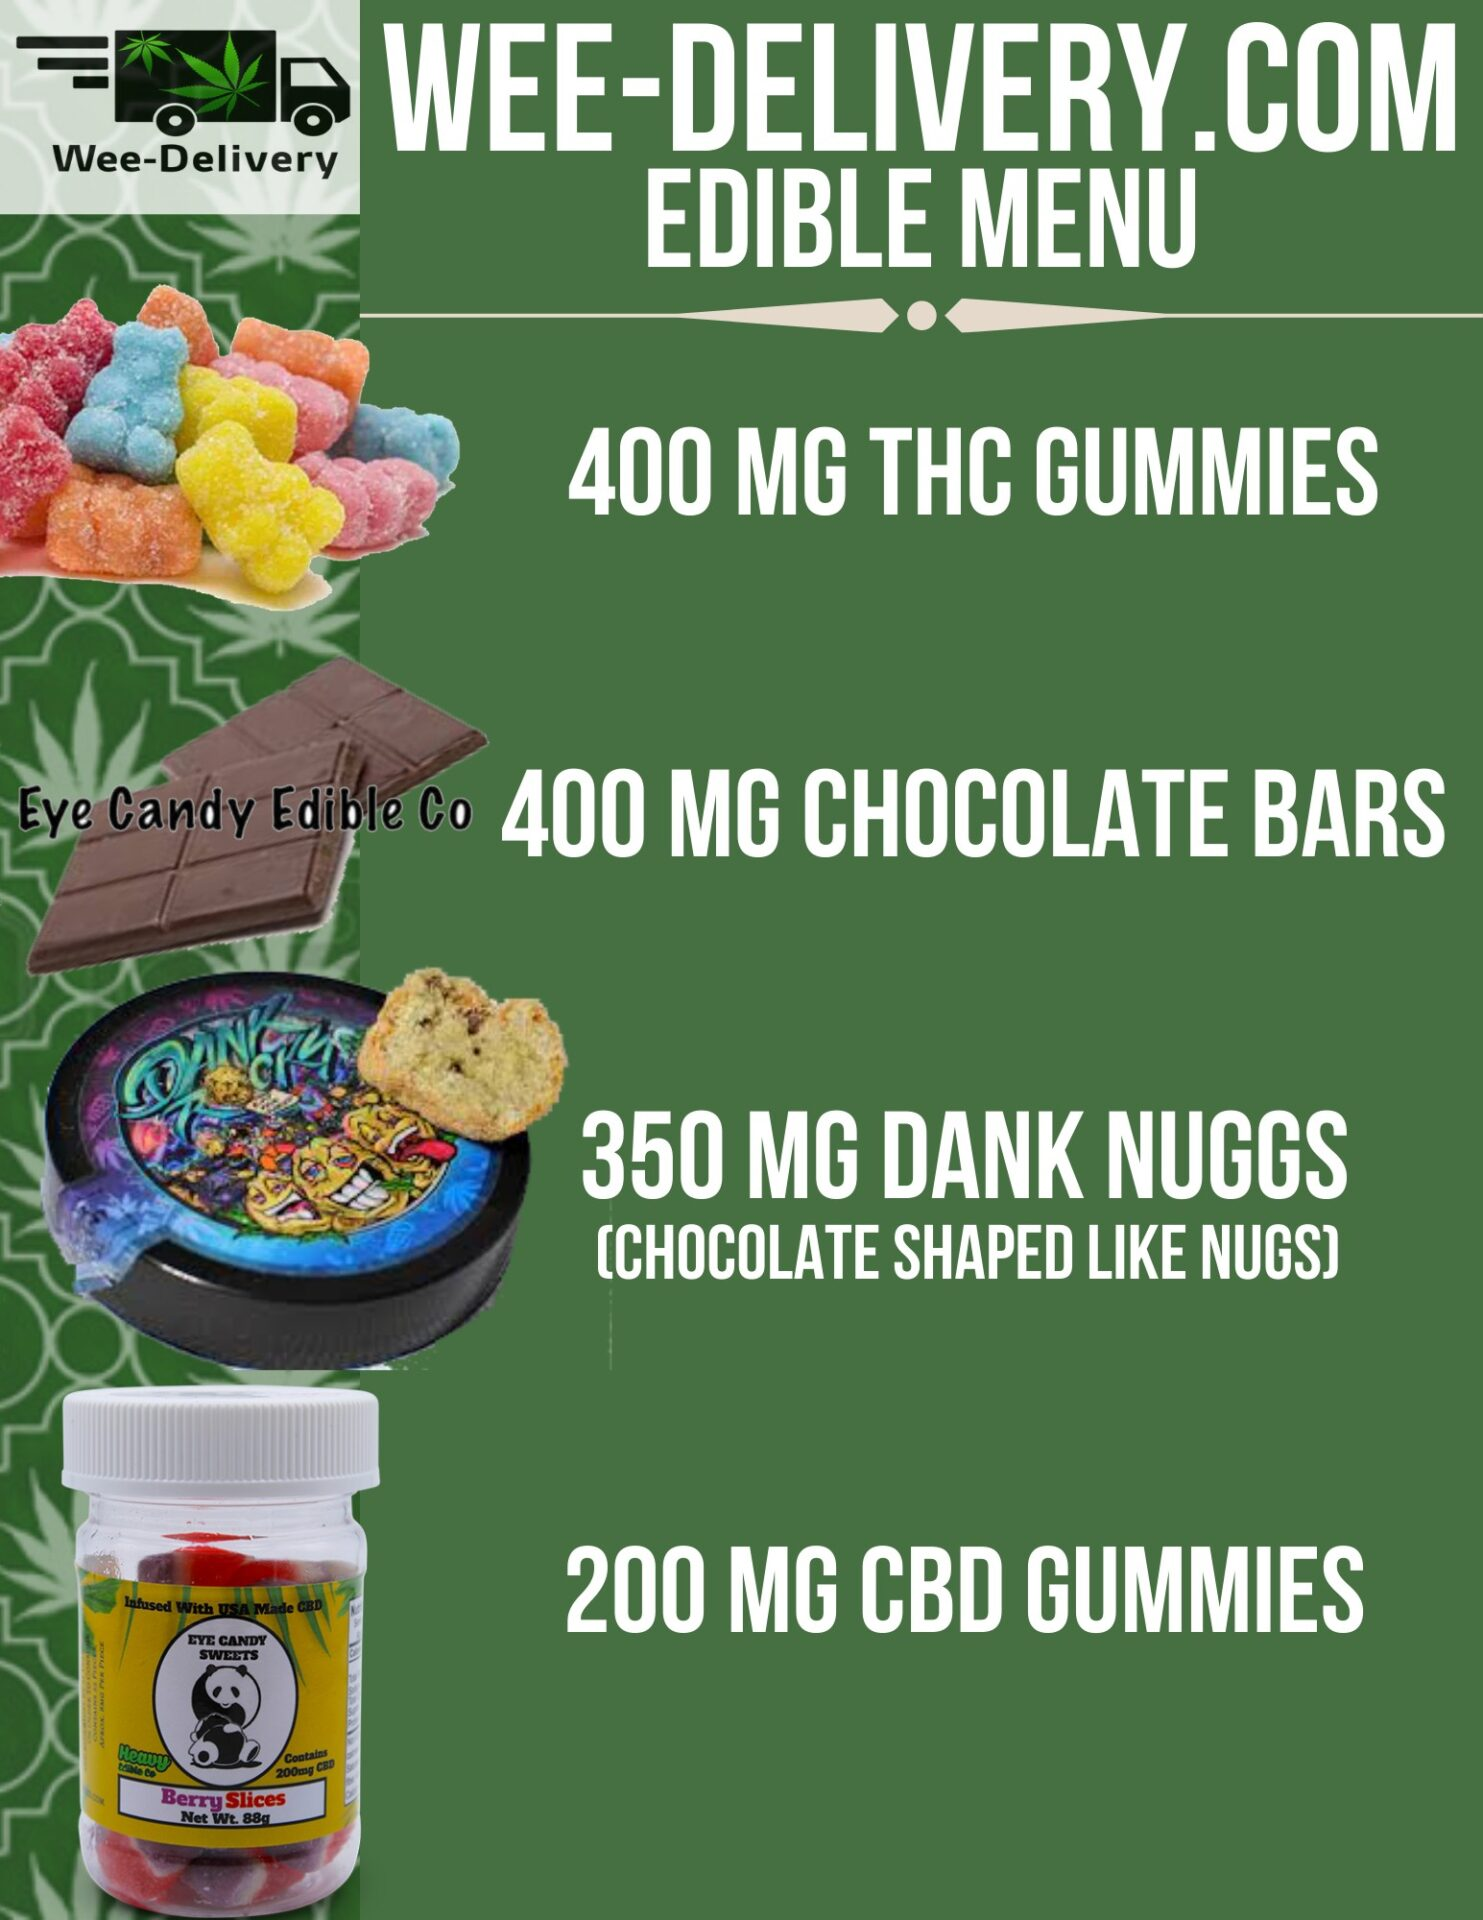 Weed-Delivery-Service-by-Wee-deliverycom-Weekend-Specials-01-04-2020-EdiblesGEO.jpg